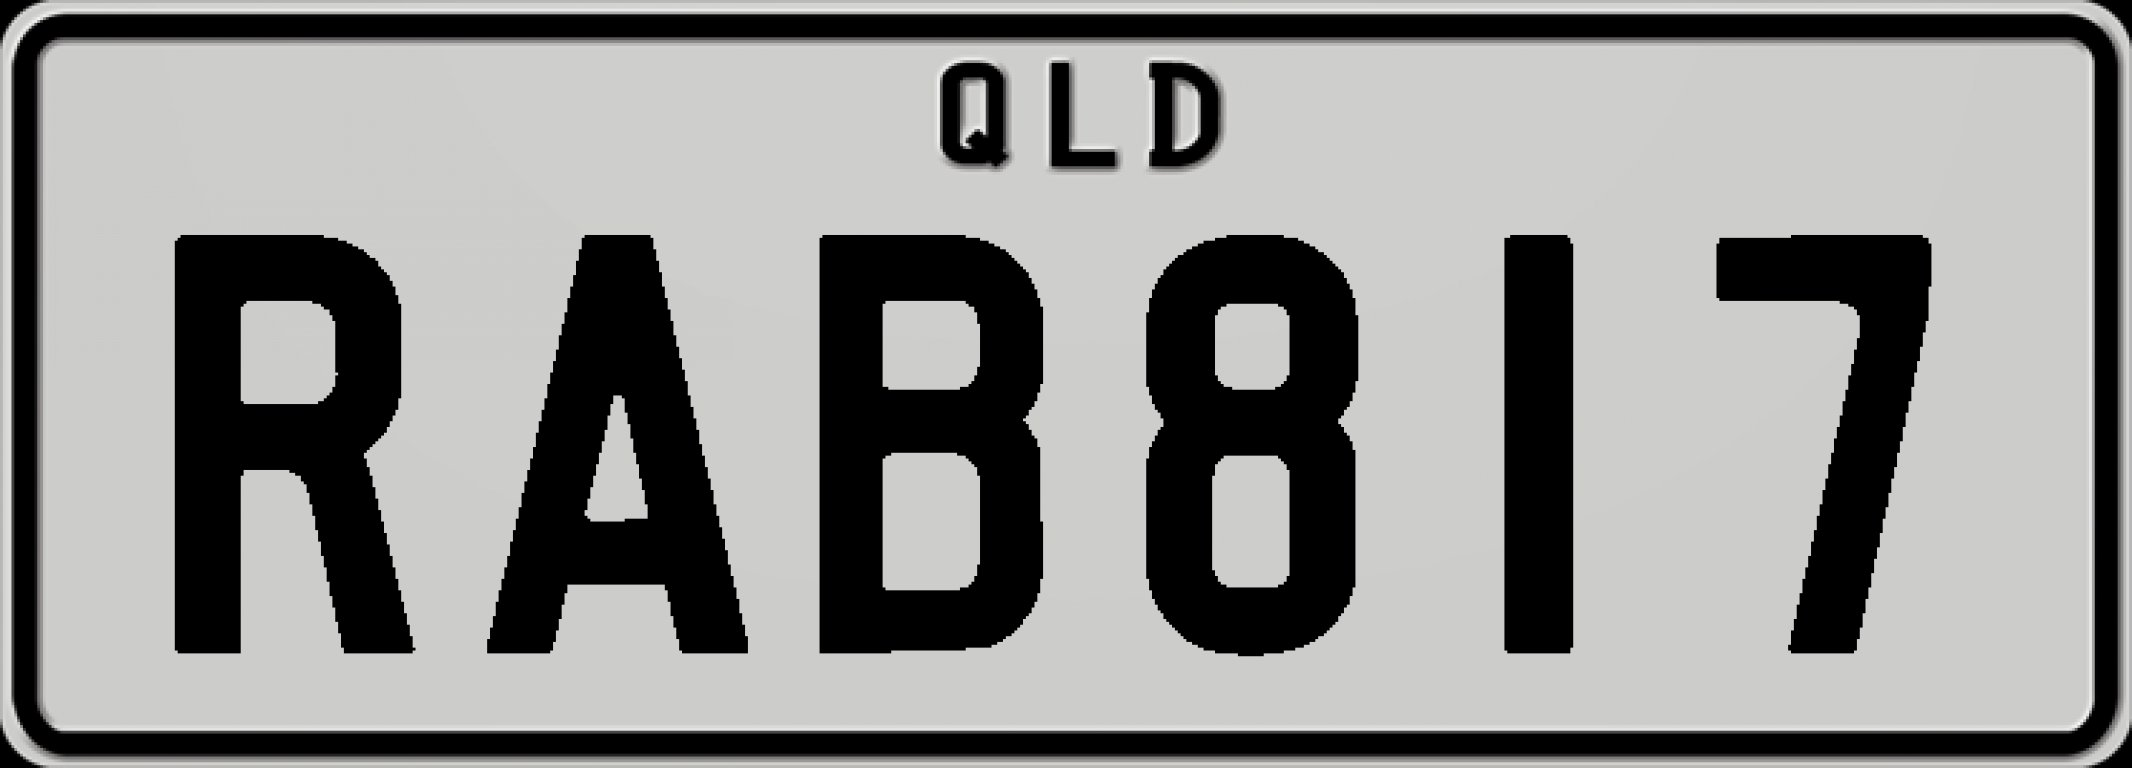 personalized number plates  sale  boostcruising     works